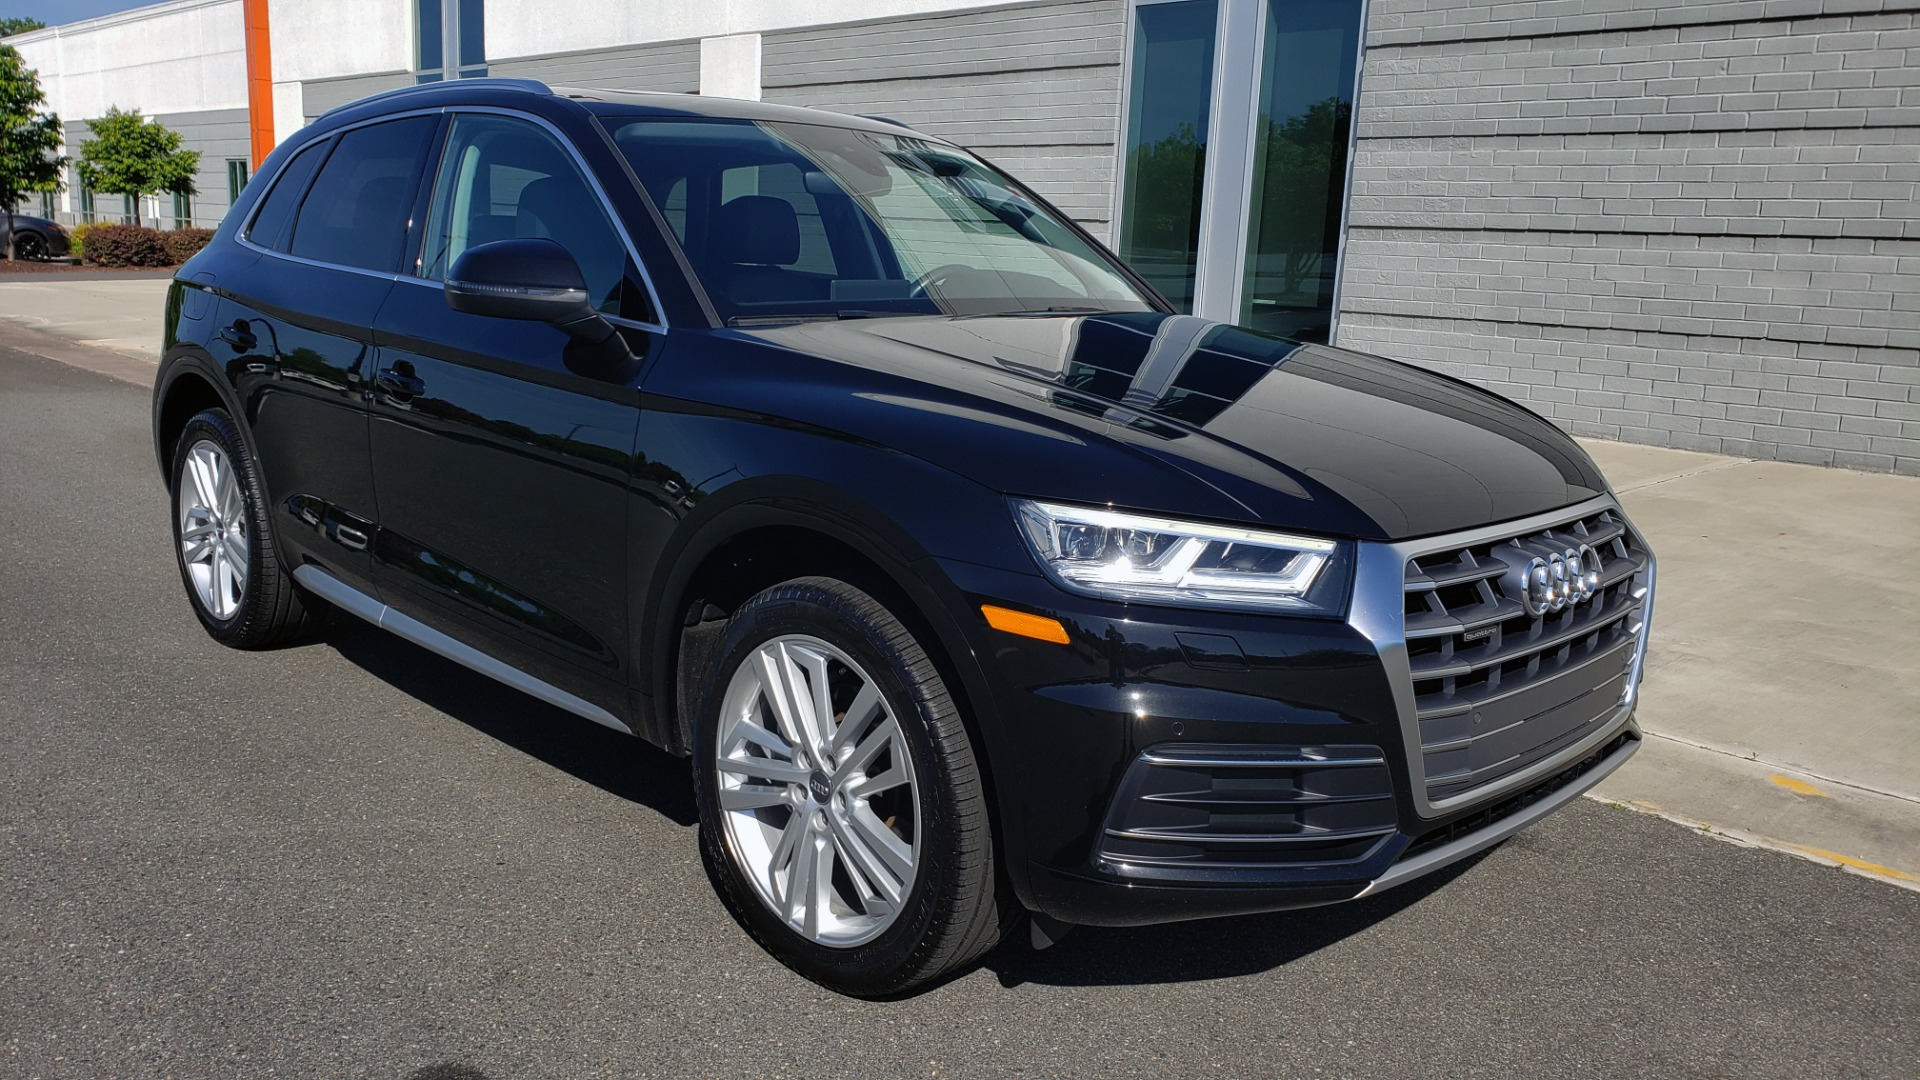 Used 2018 Audi Q5 PREMIUM PLUS / NAV / B&O SND / CLD WTHR / SUNROOF / REARVIEW for sale Sold at Formula Imports in Charlotte NC 28227 8